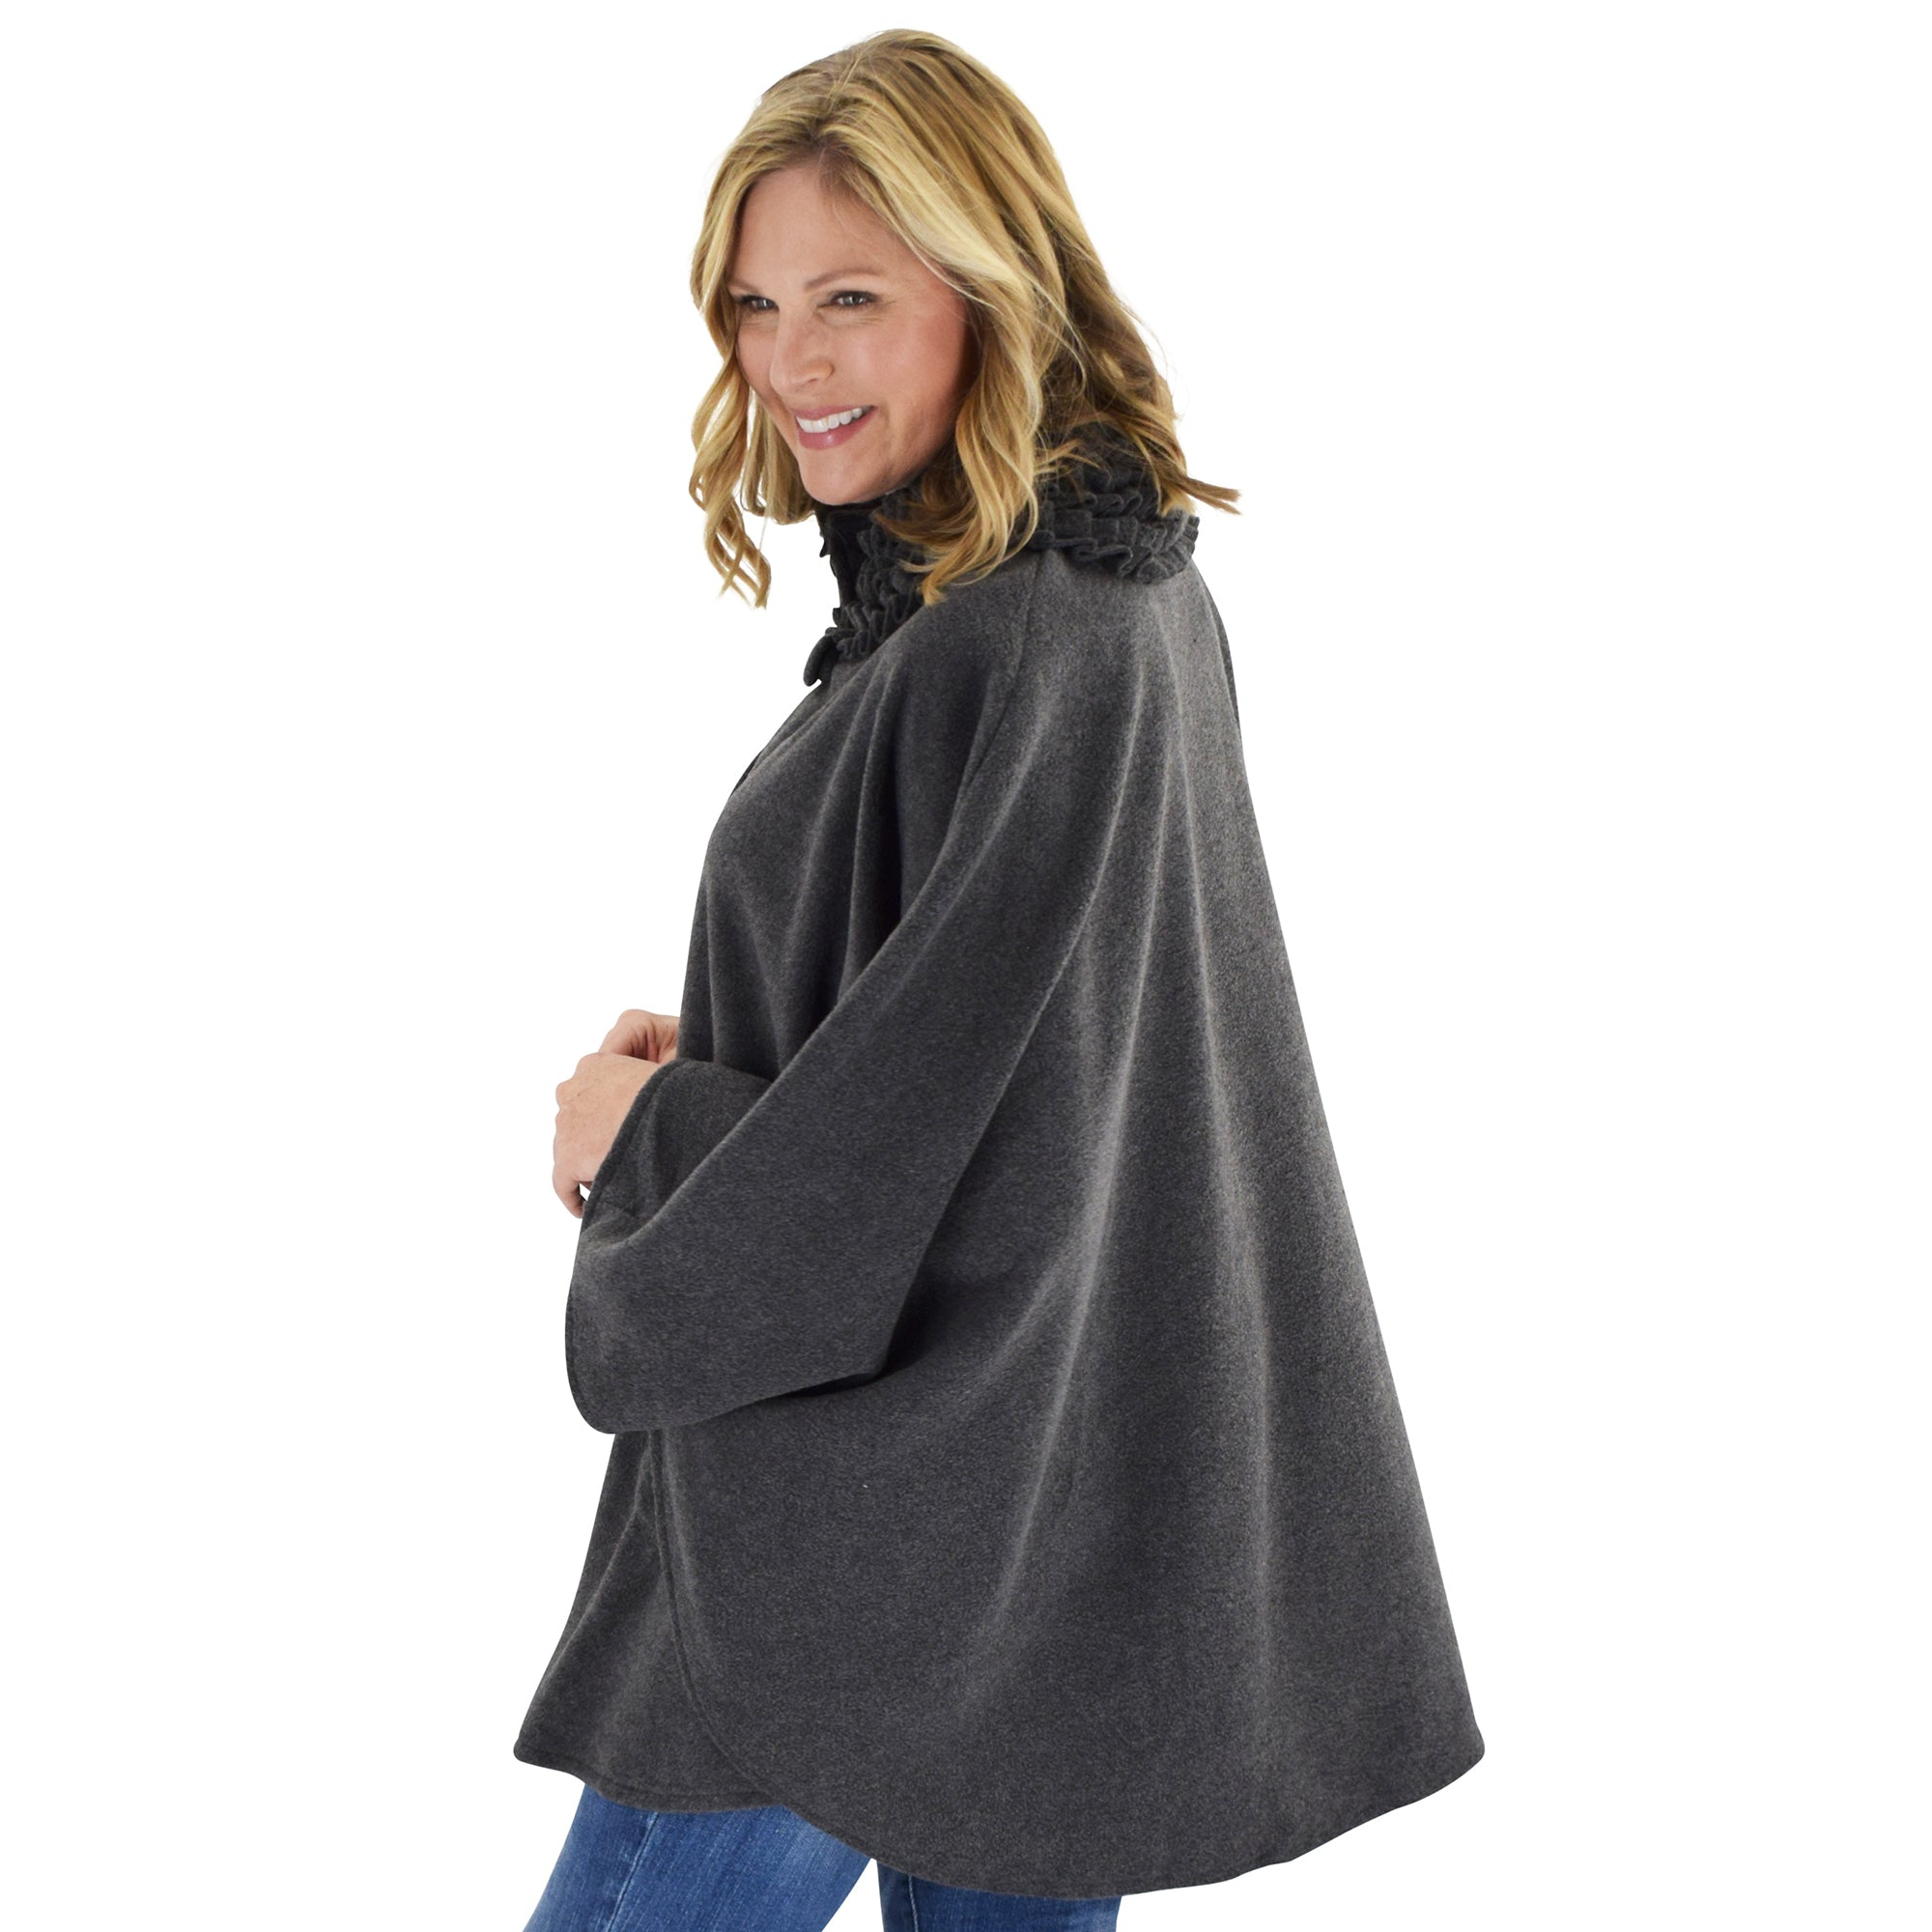 Le Moda Women's Ruffed collar Fleece Wrap with Matching Gloves and Hat - One Size Fits All at Linda Anderson. color_charcoal